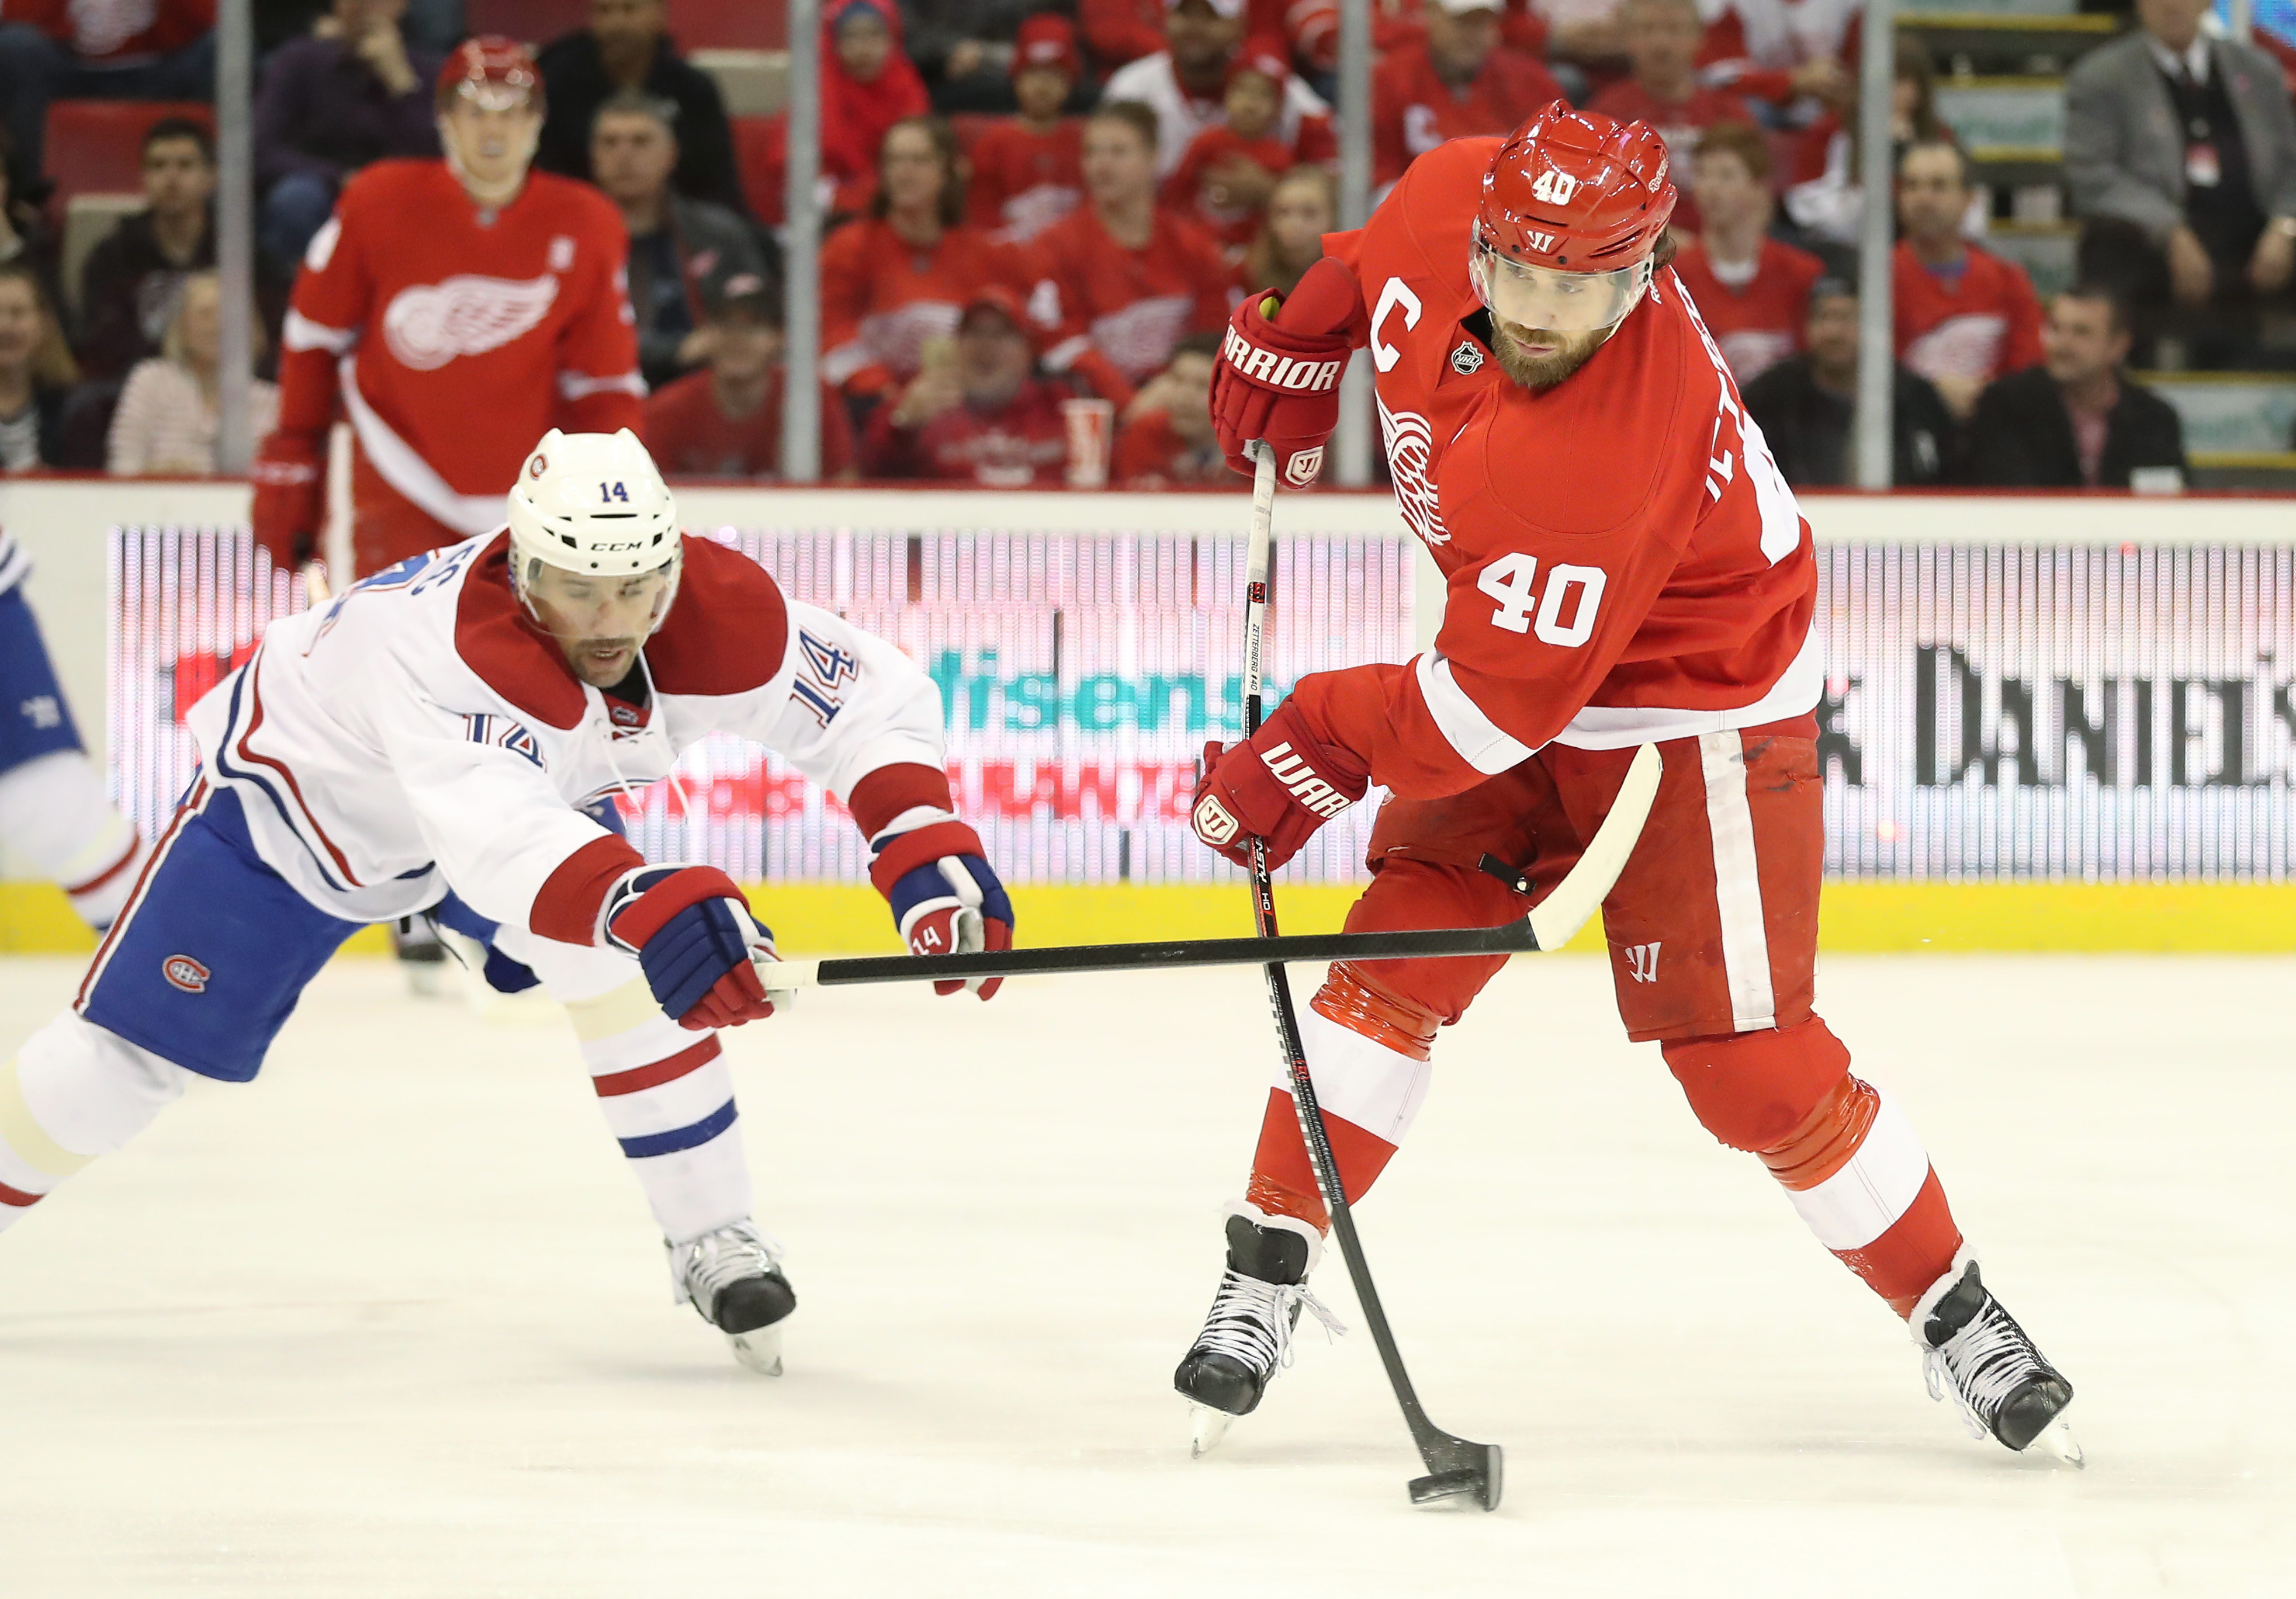 9707299-nhl-montreal-canadiens-at-detroit-red-wings